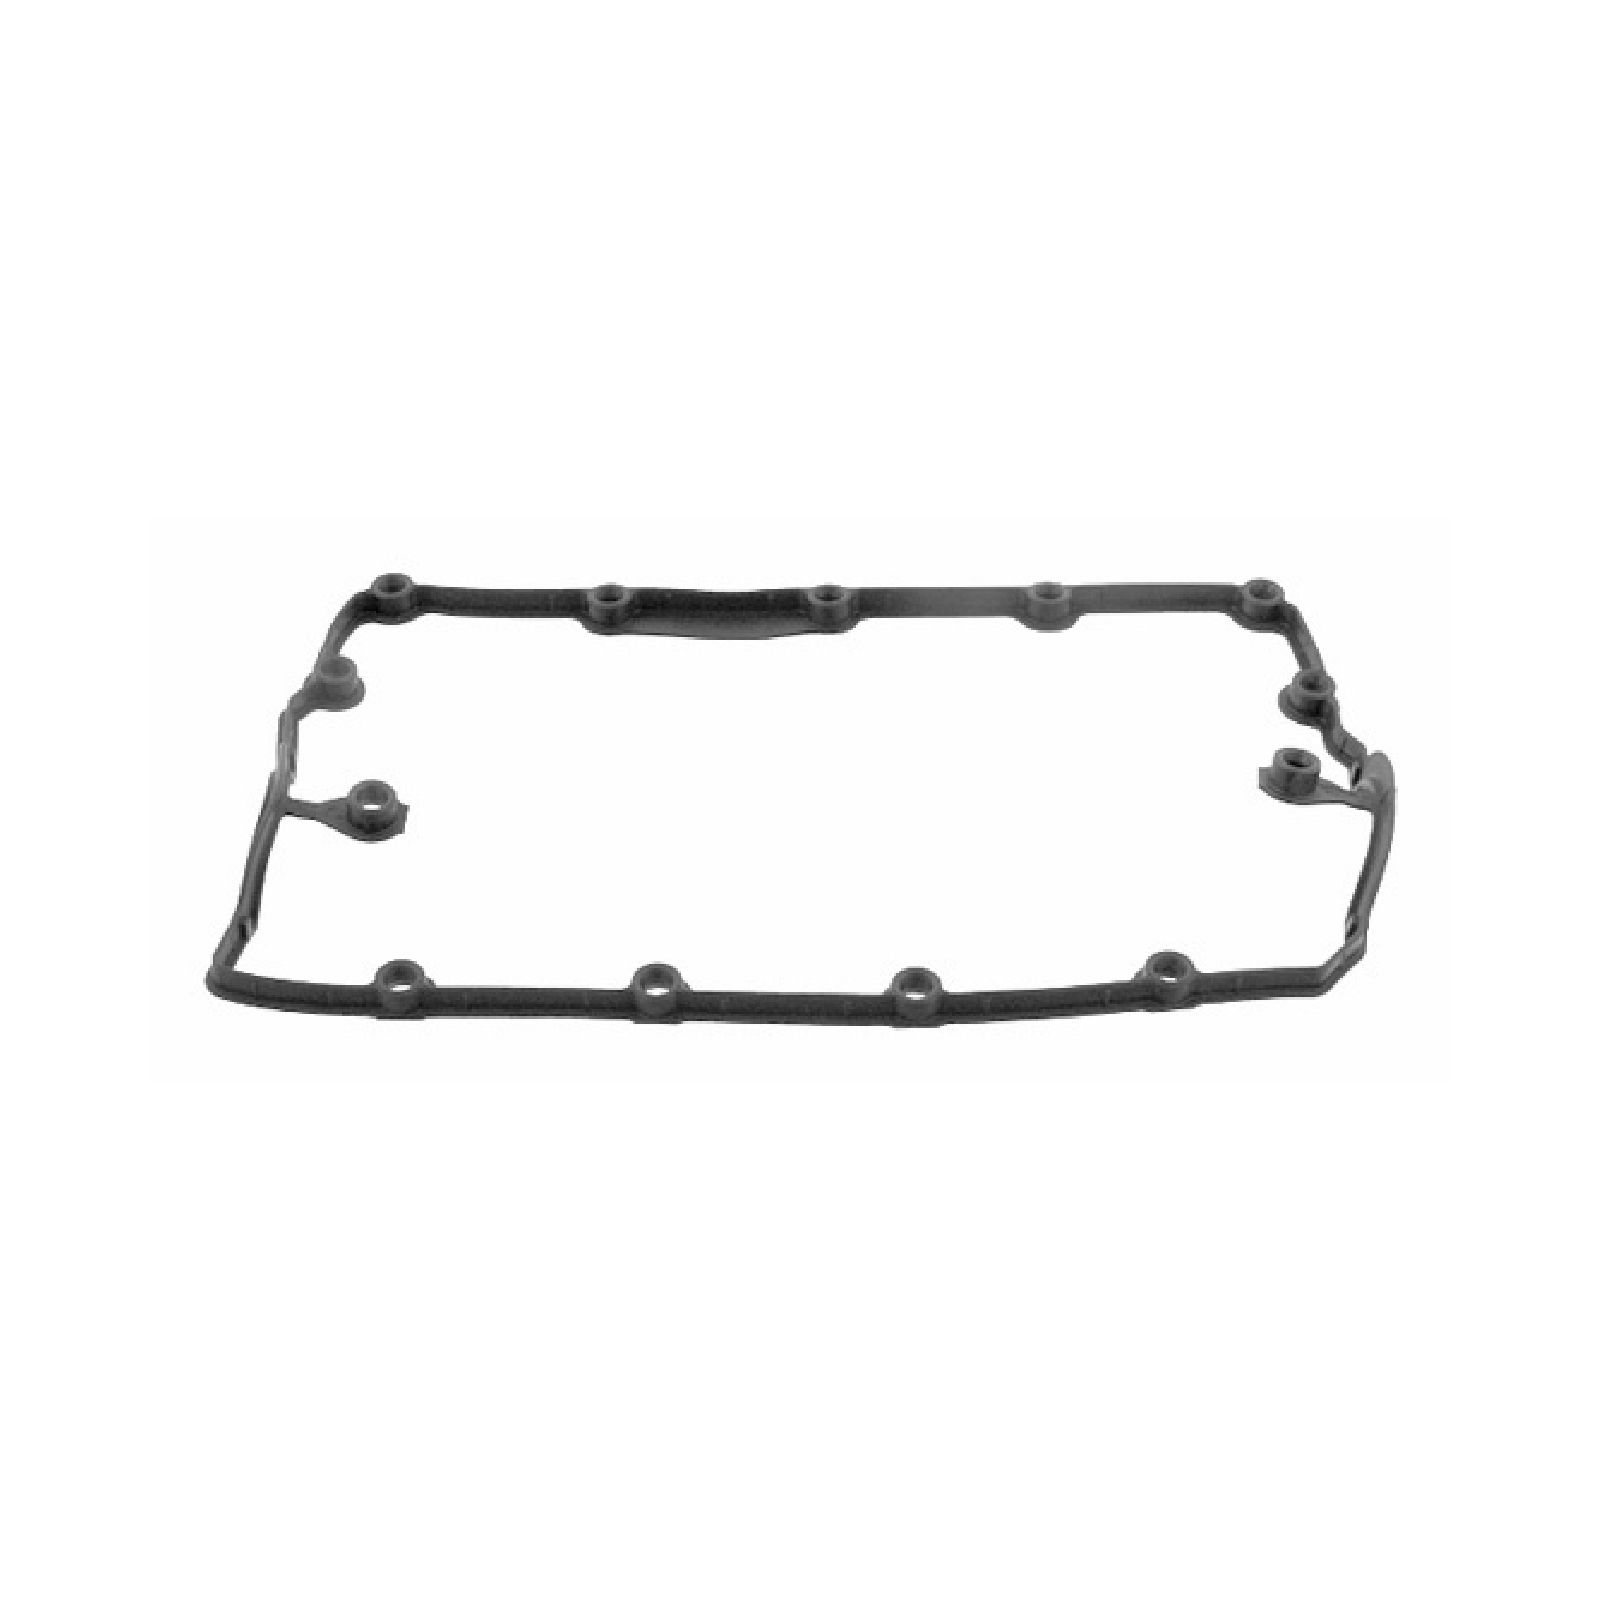 Audi A4 B5 1 9 Tdi Genuine Febi Engine Rocker Cover Gasket